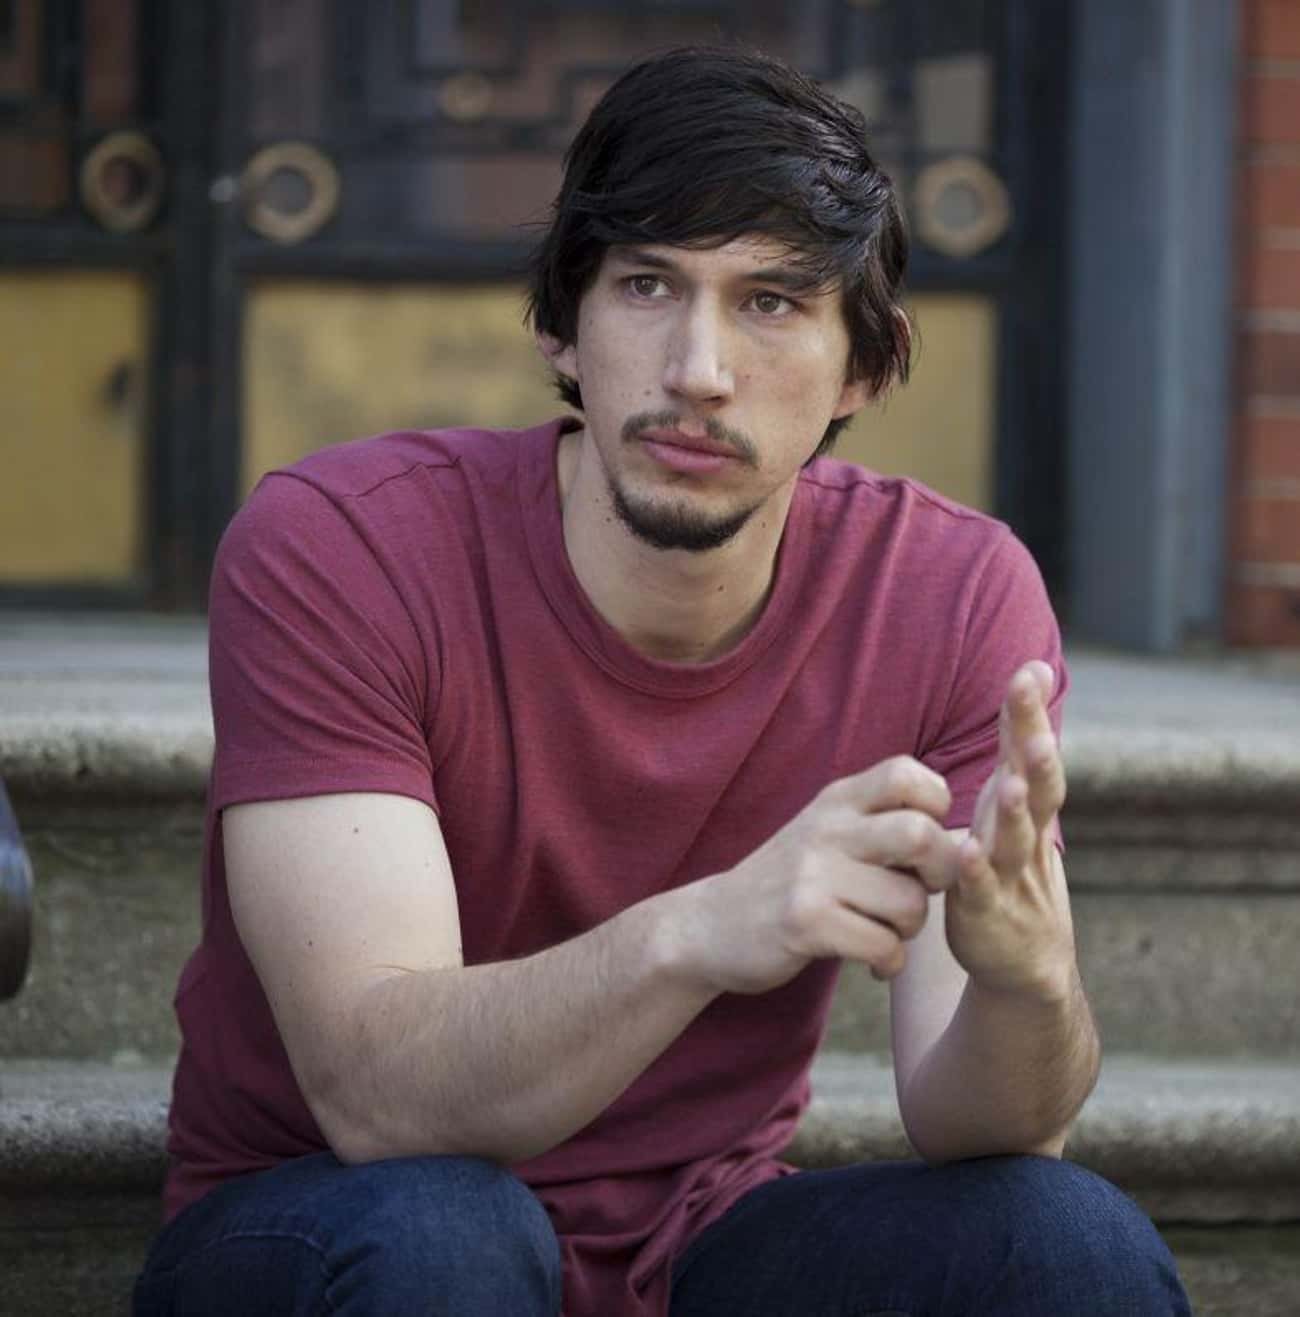 Adam Driver - Adam Sackler is listed (or ranked) 3 on the list Actors Who Are Only Hot Because Of The Characters They Play